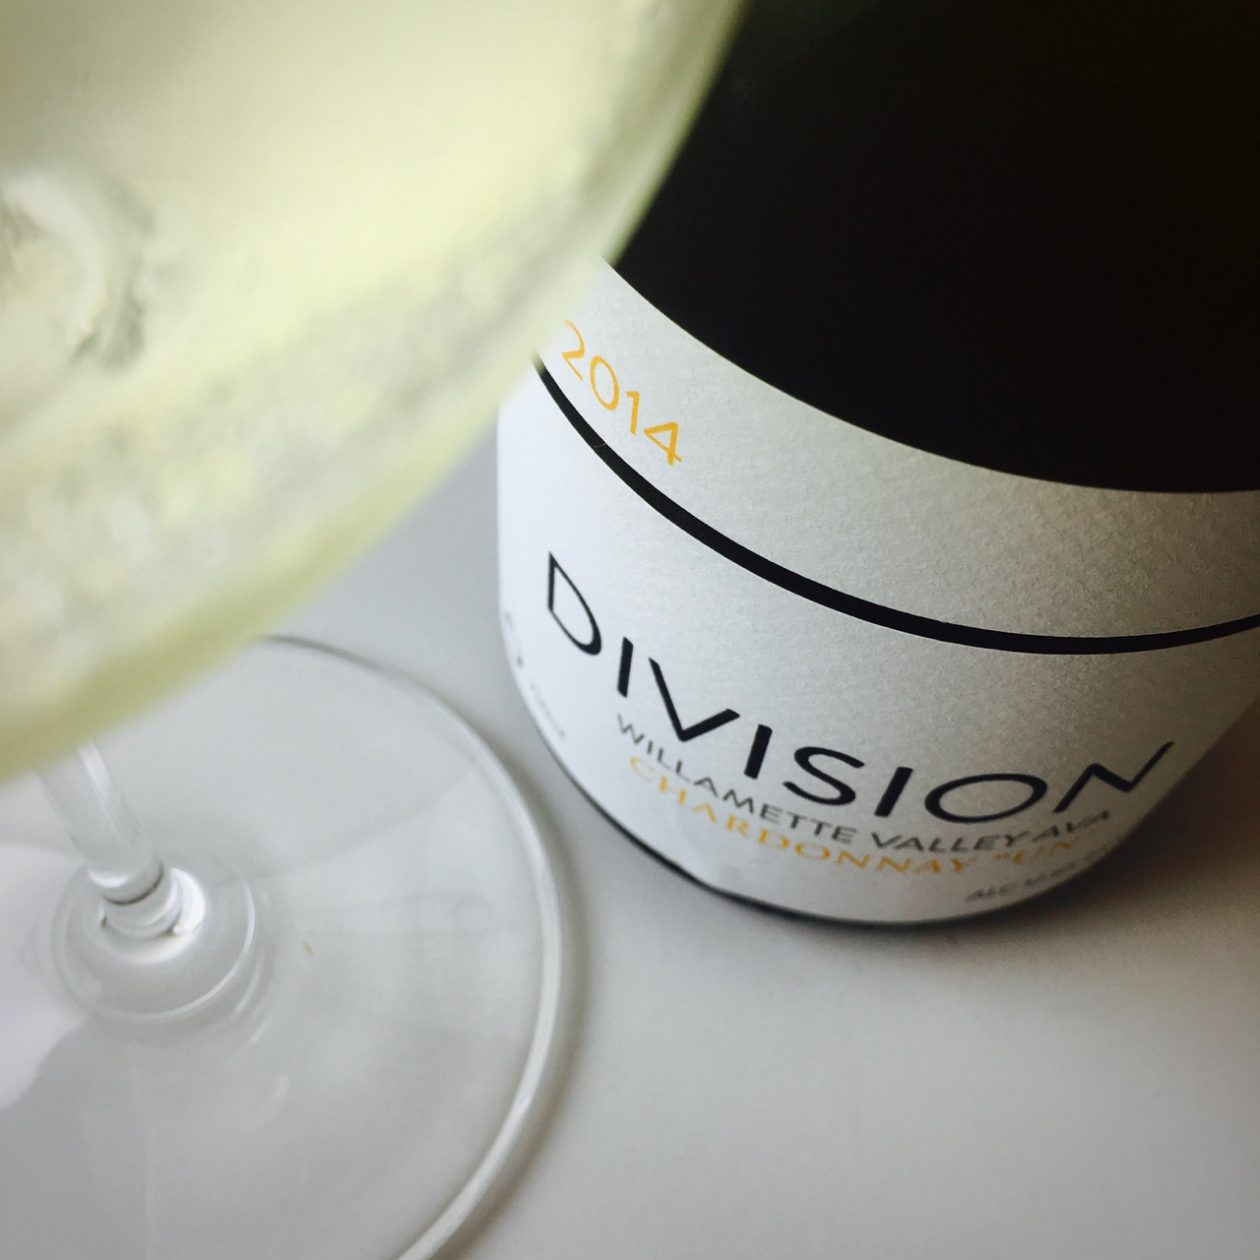 2014 Division Wine Company Chardonnay Un Willamette Valley